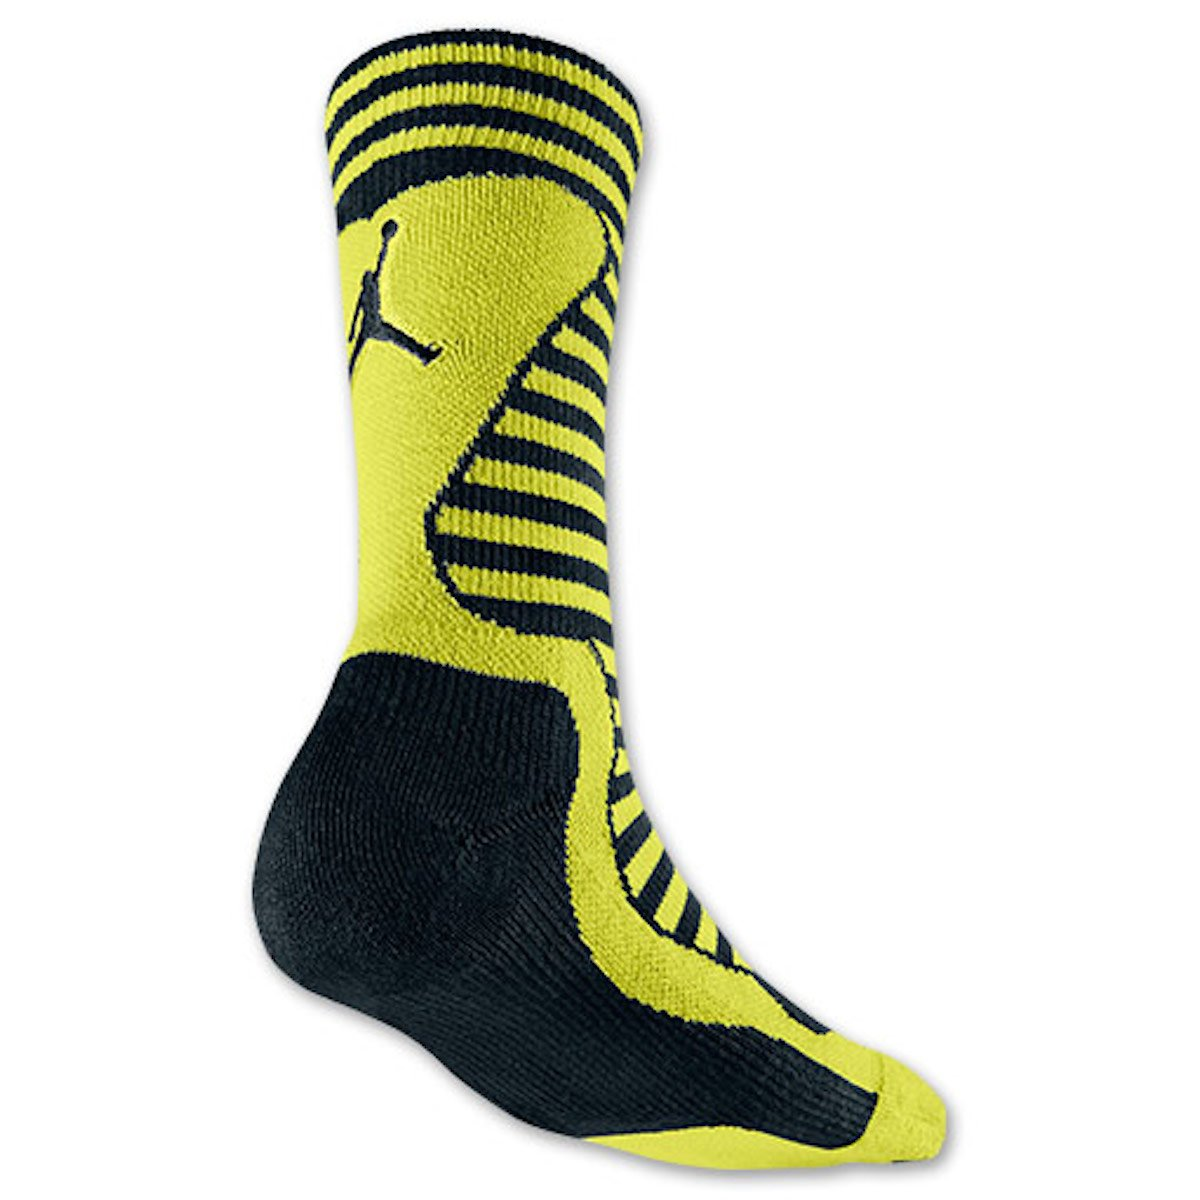 Amazon.com : [589046-013] AIR JORDAN X SNEAKER SOCKS APPAREL APPAREL AIR JORDANGREEN/BLACK : Sports & Outdoors